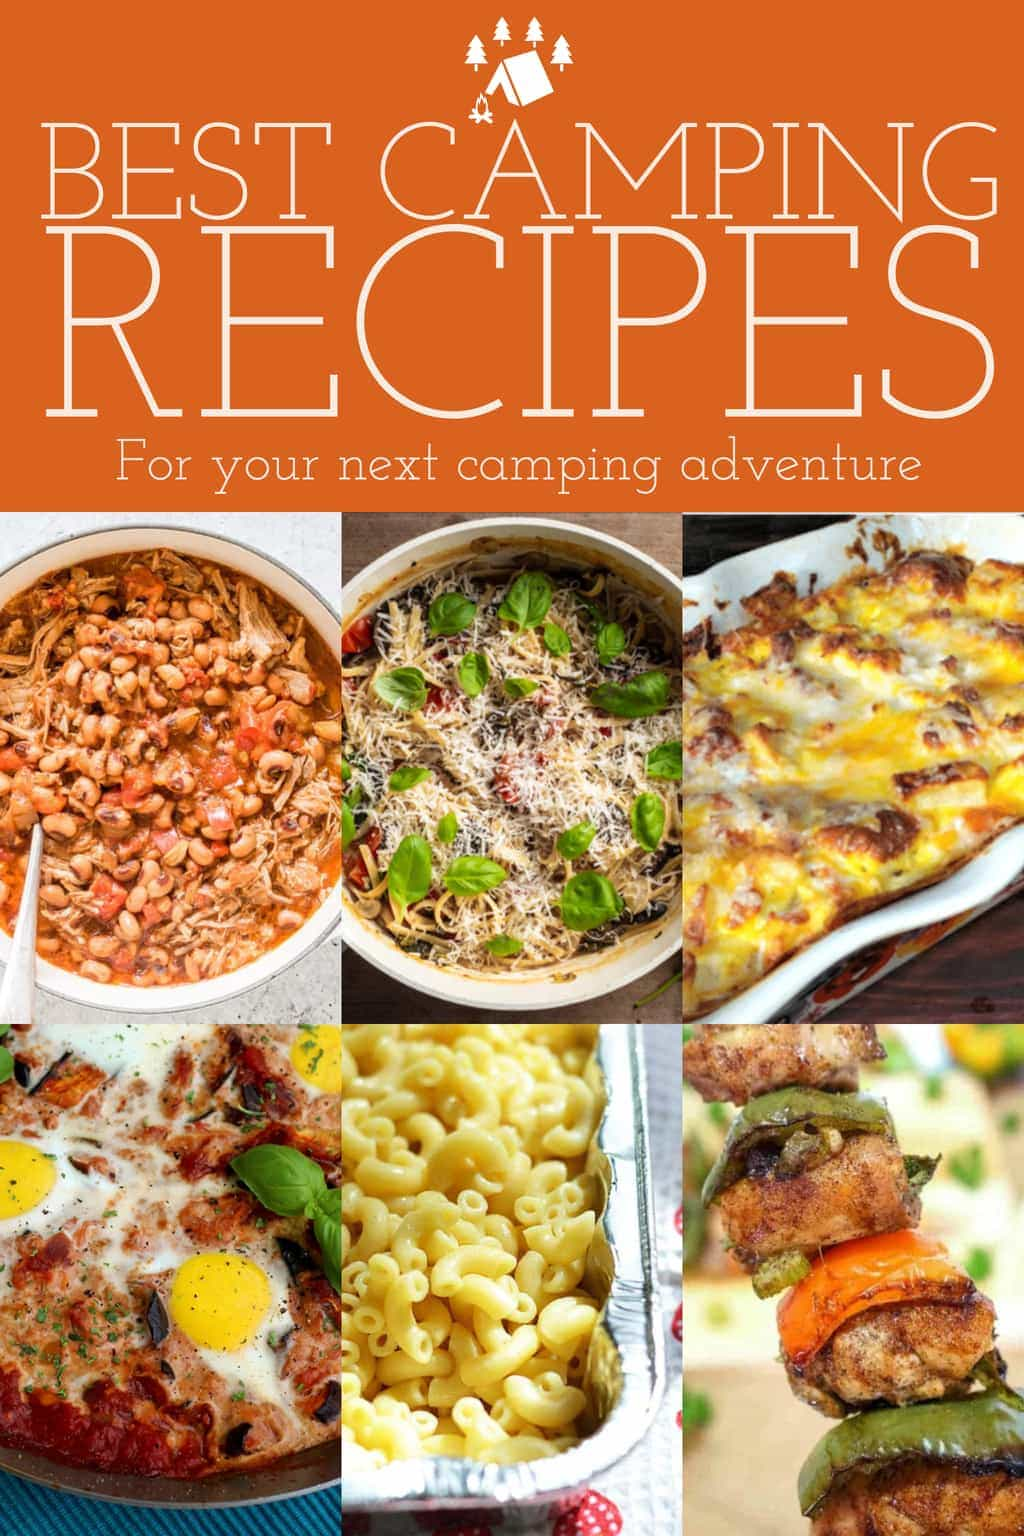 35 Camping Recipes Camping Food Ideas For Your Camping Adventure